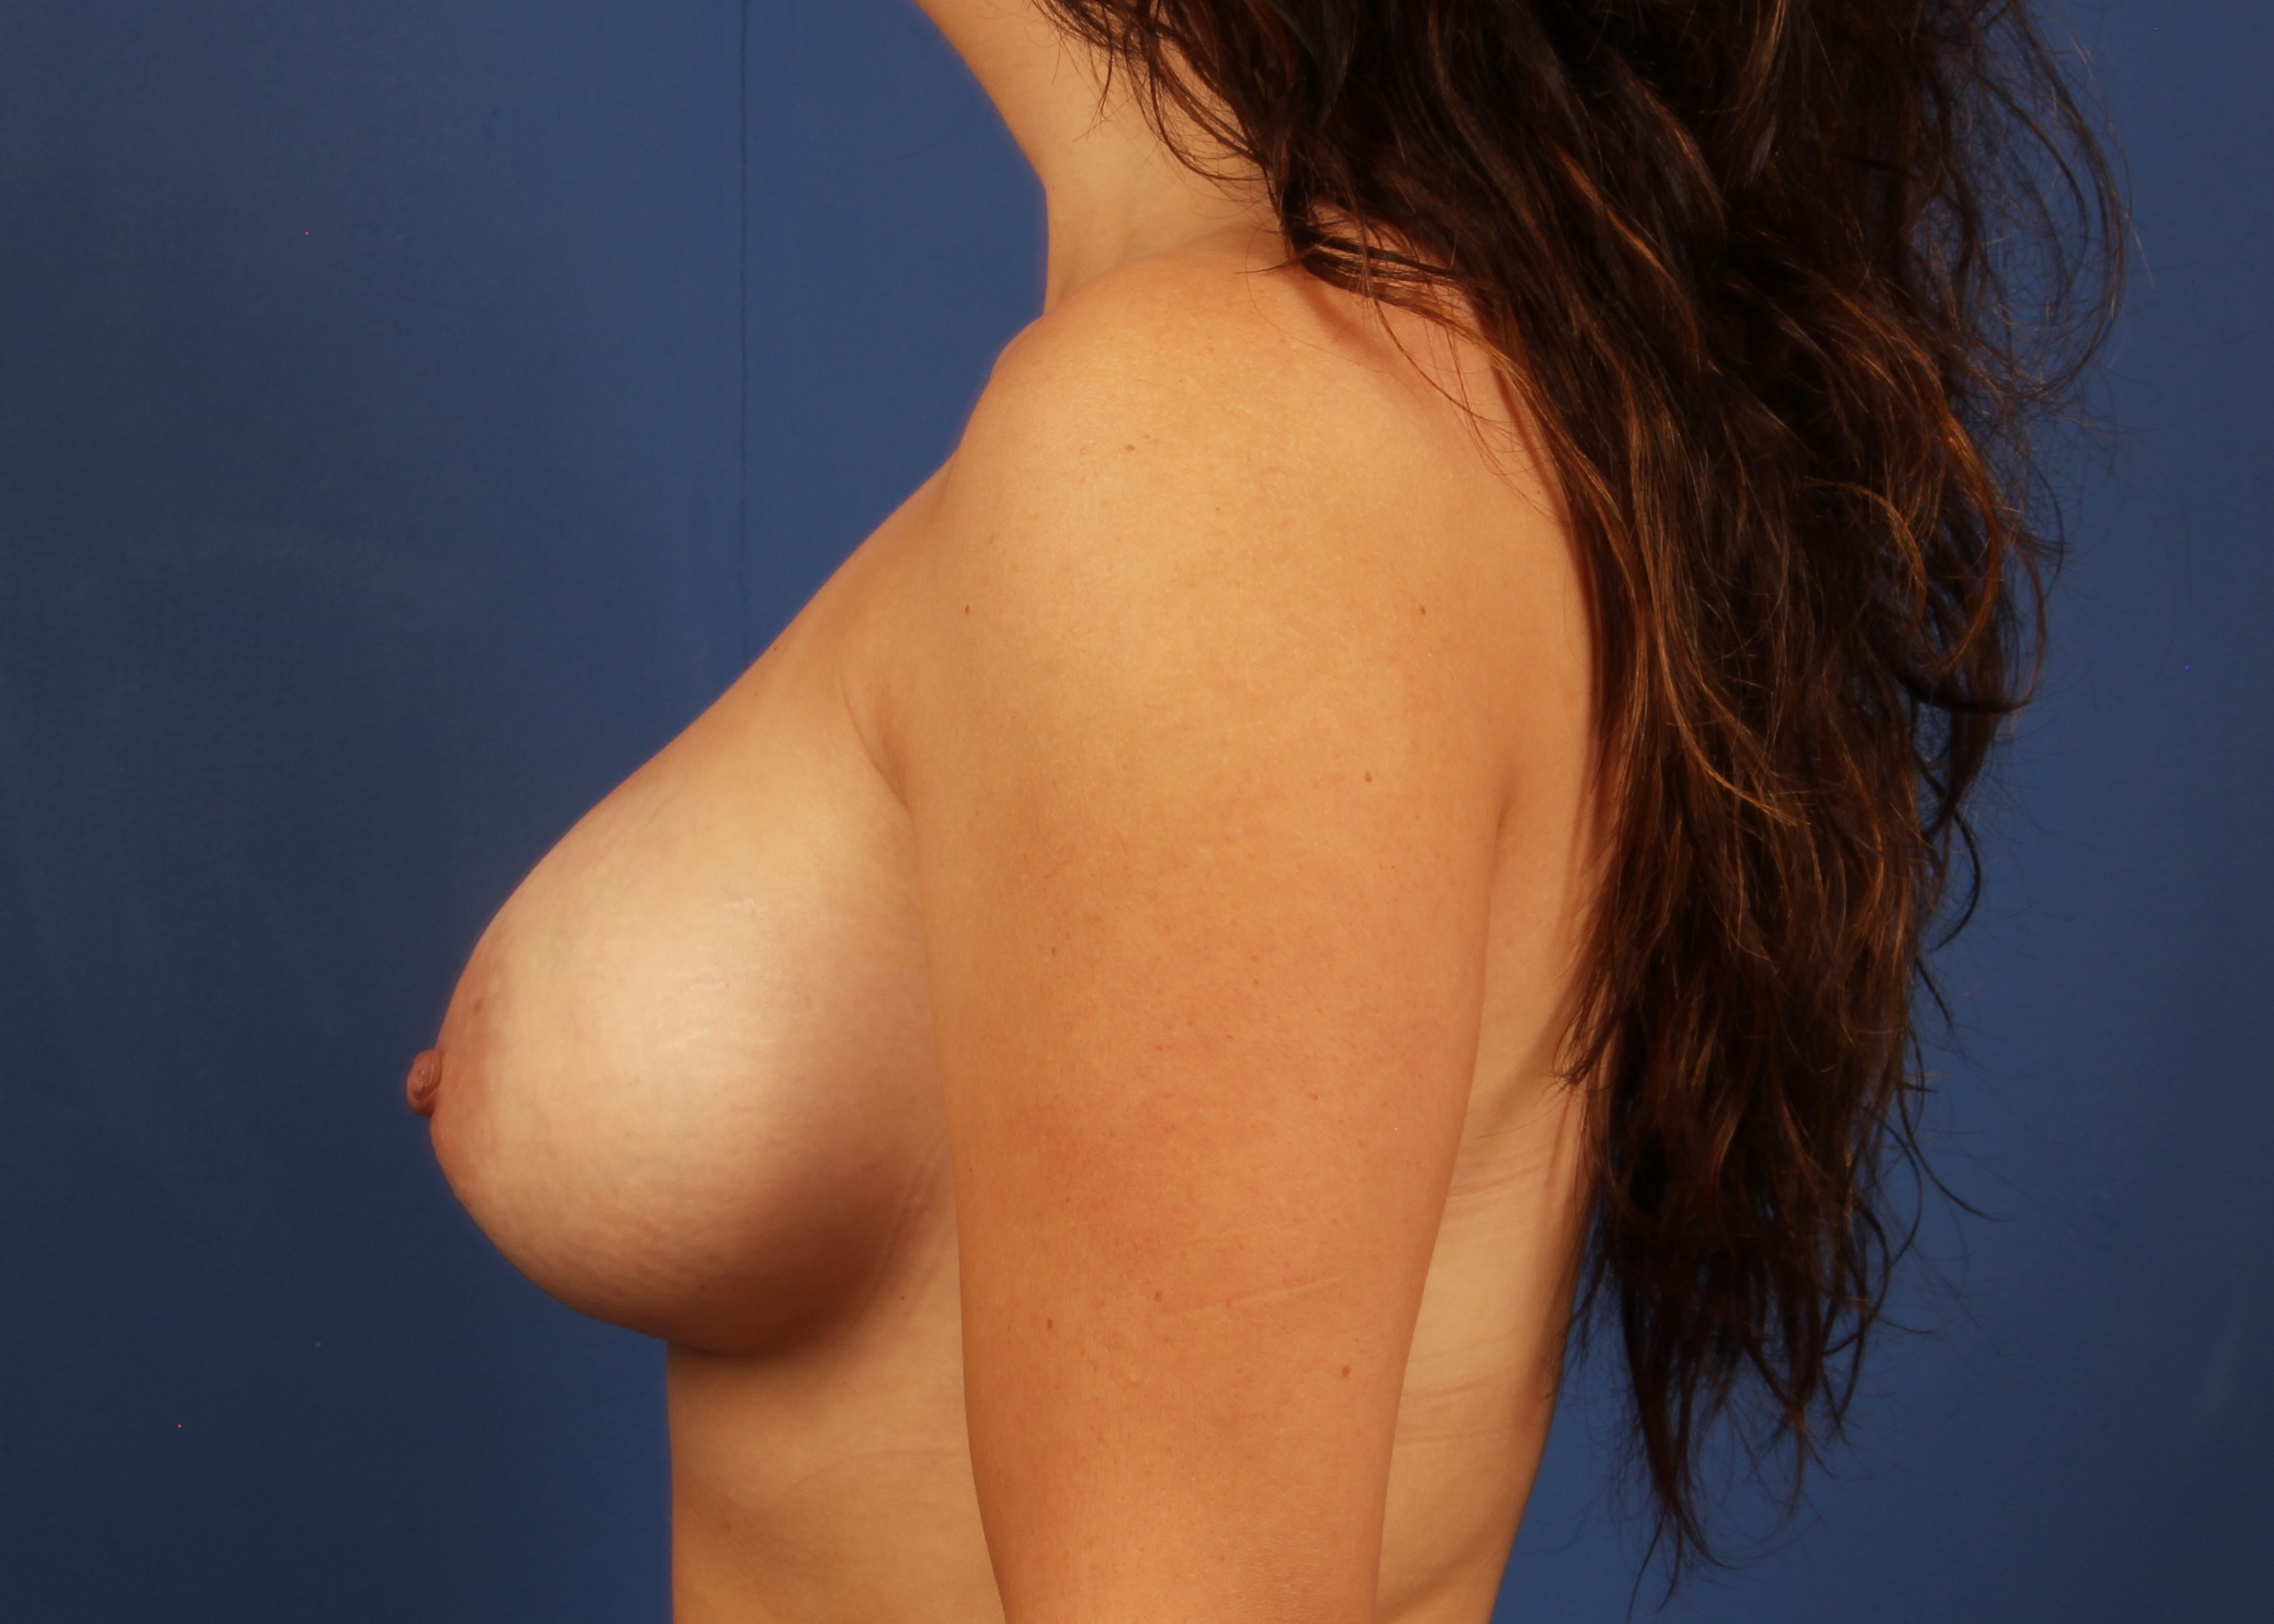 after breast implants Left View - Left View